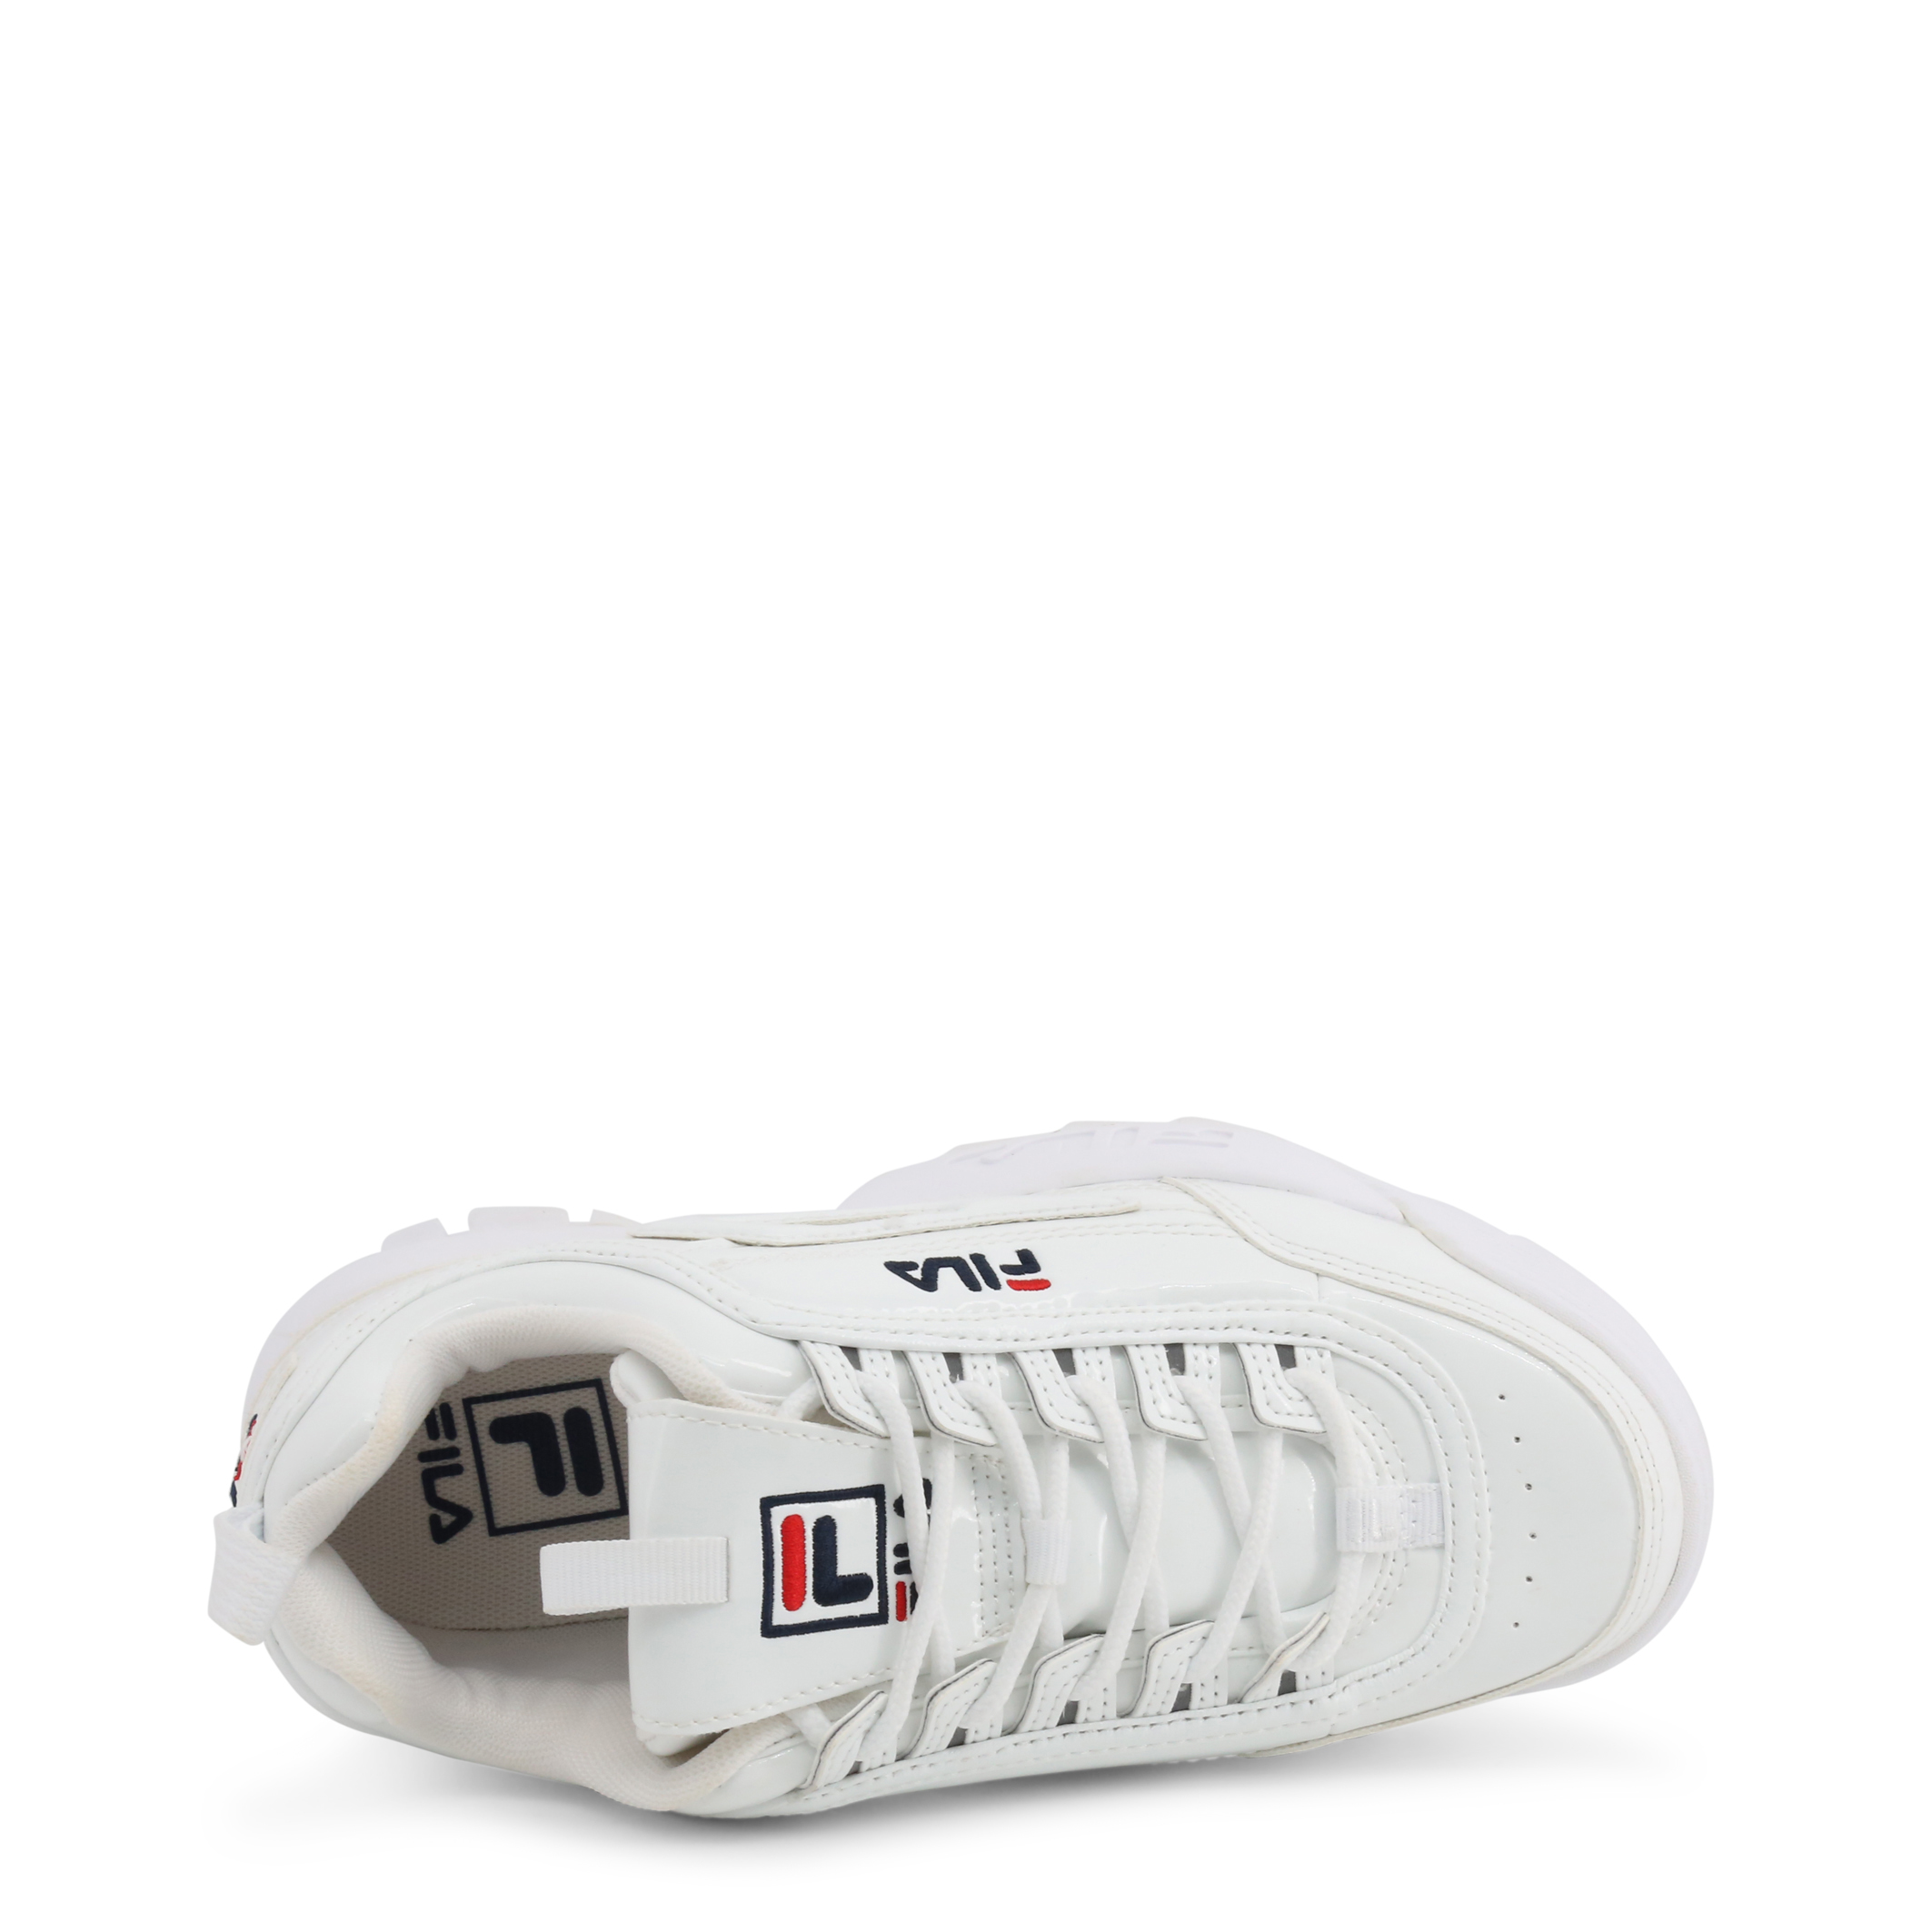 Baskets / Sneakers  Fila DISRUPTOR-P_1010746 white